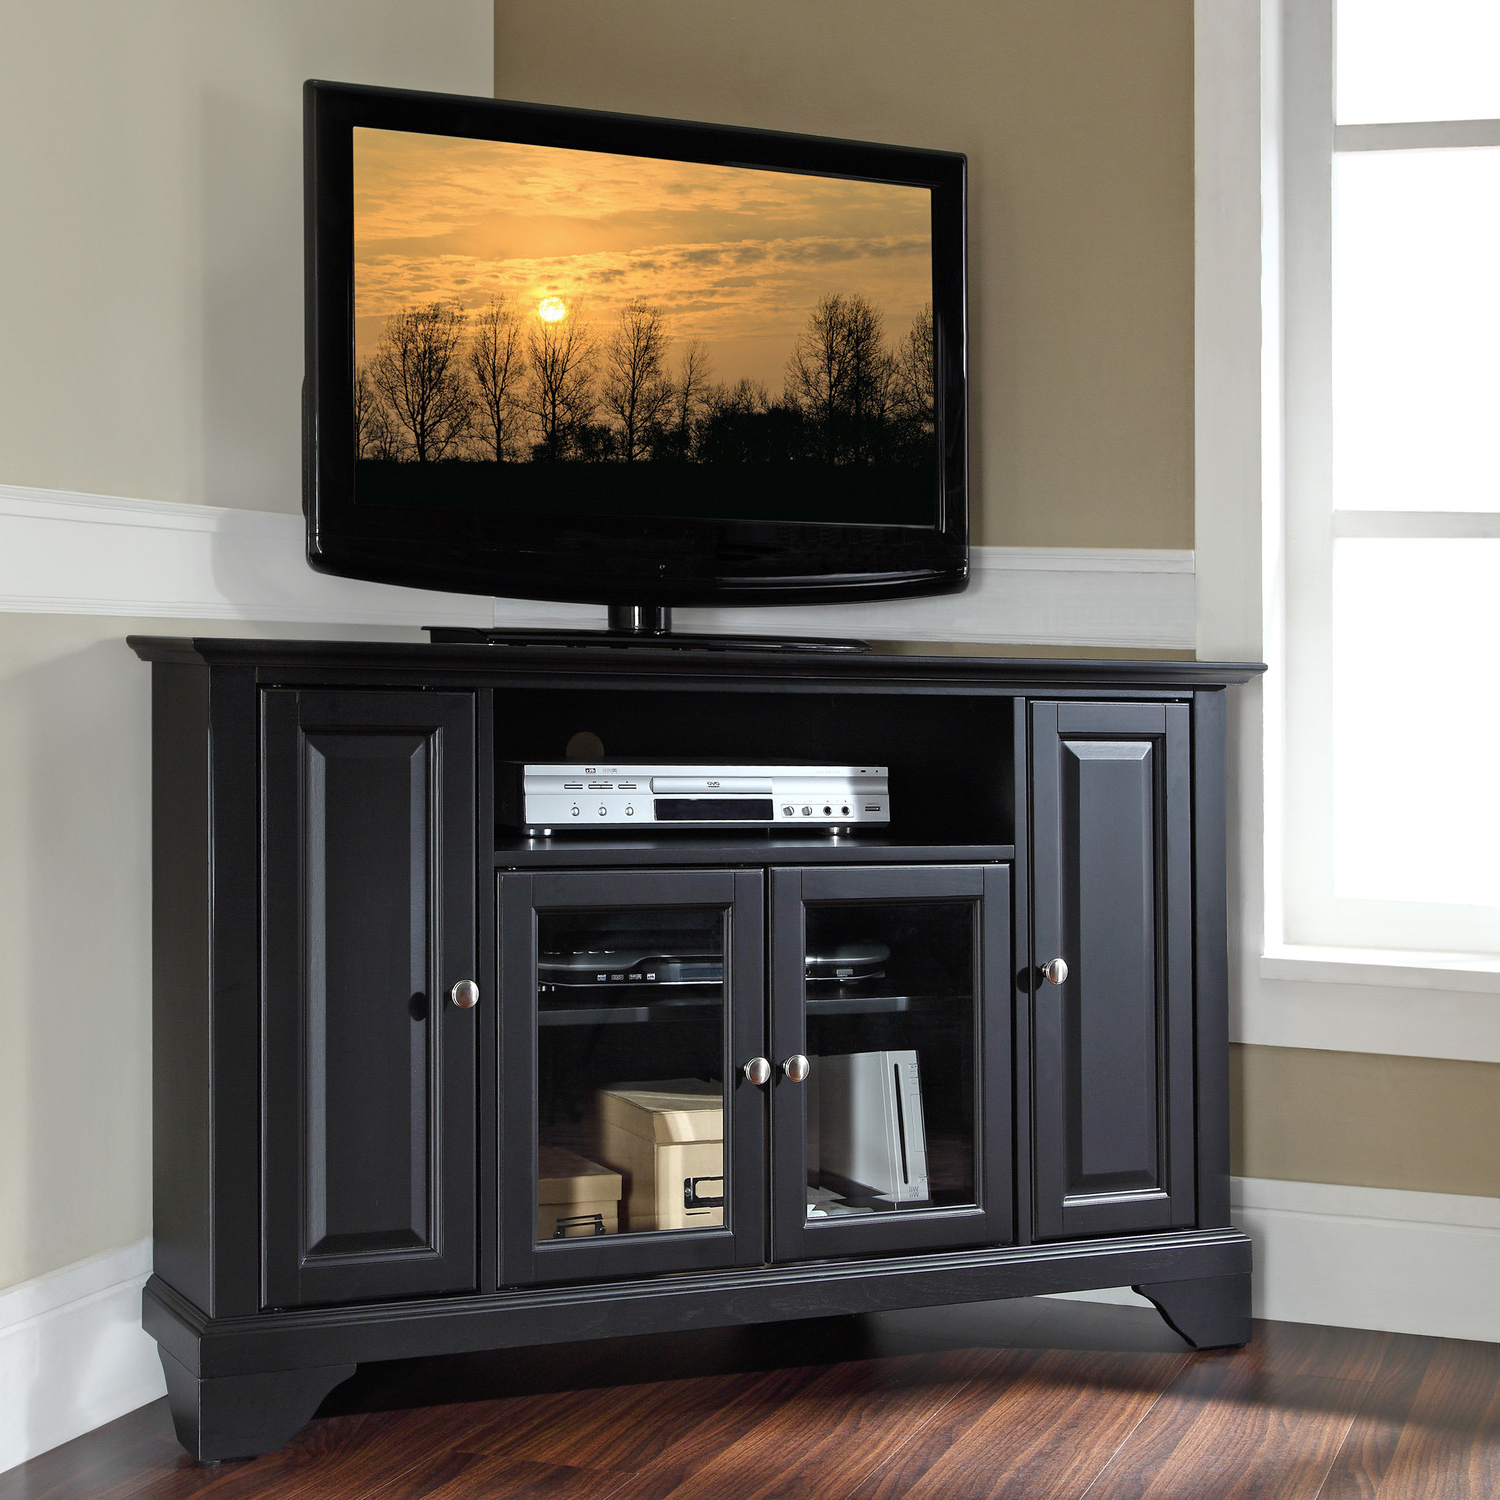 Solid Wood Black Tv Stands Pertaining To Well Liked Tv Stands. Incredible Tv Stand For 70 Inch Flat Screen Design (Gallery 14 of 20)